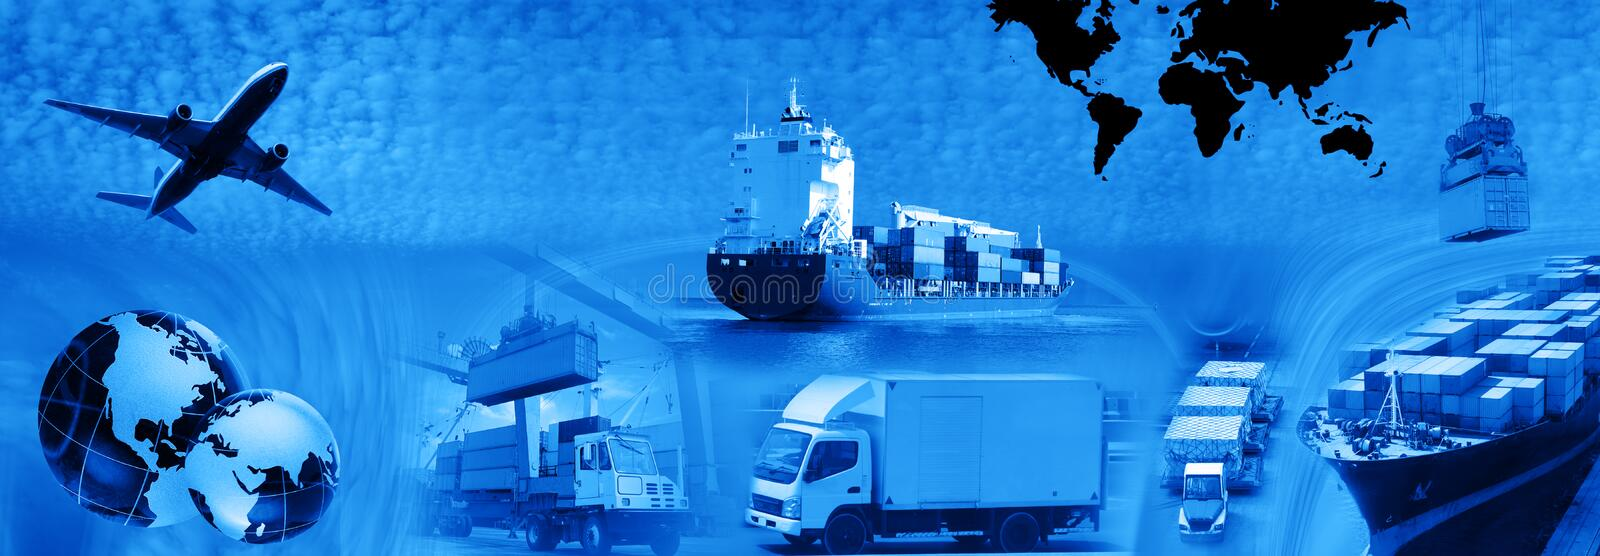 Freight template 2010 royalty free stock photos